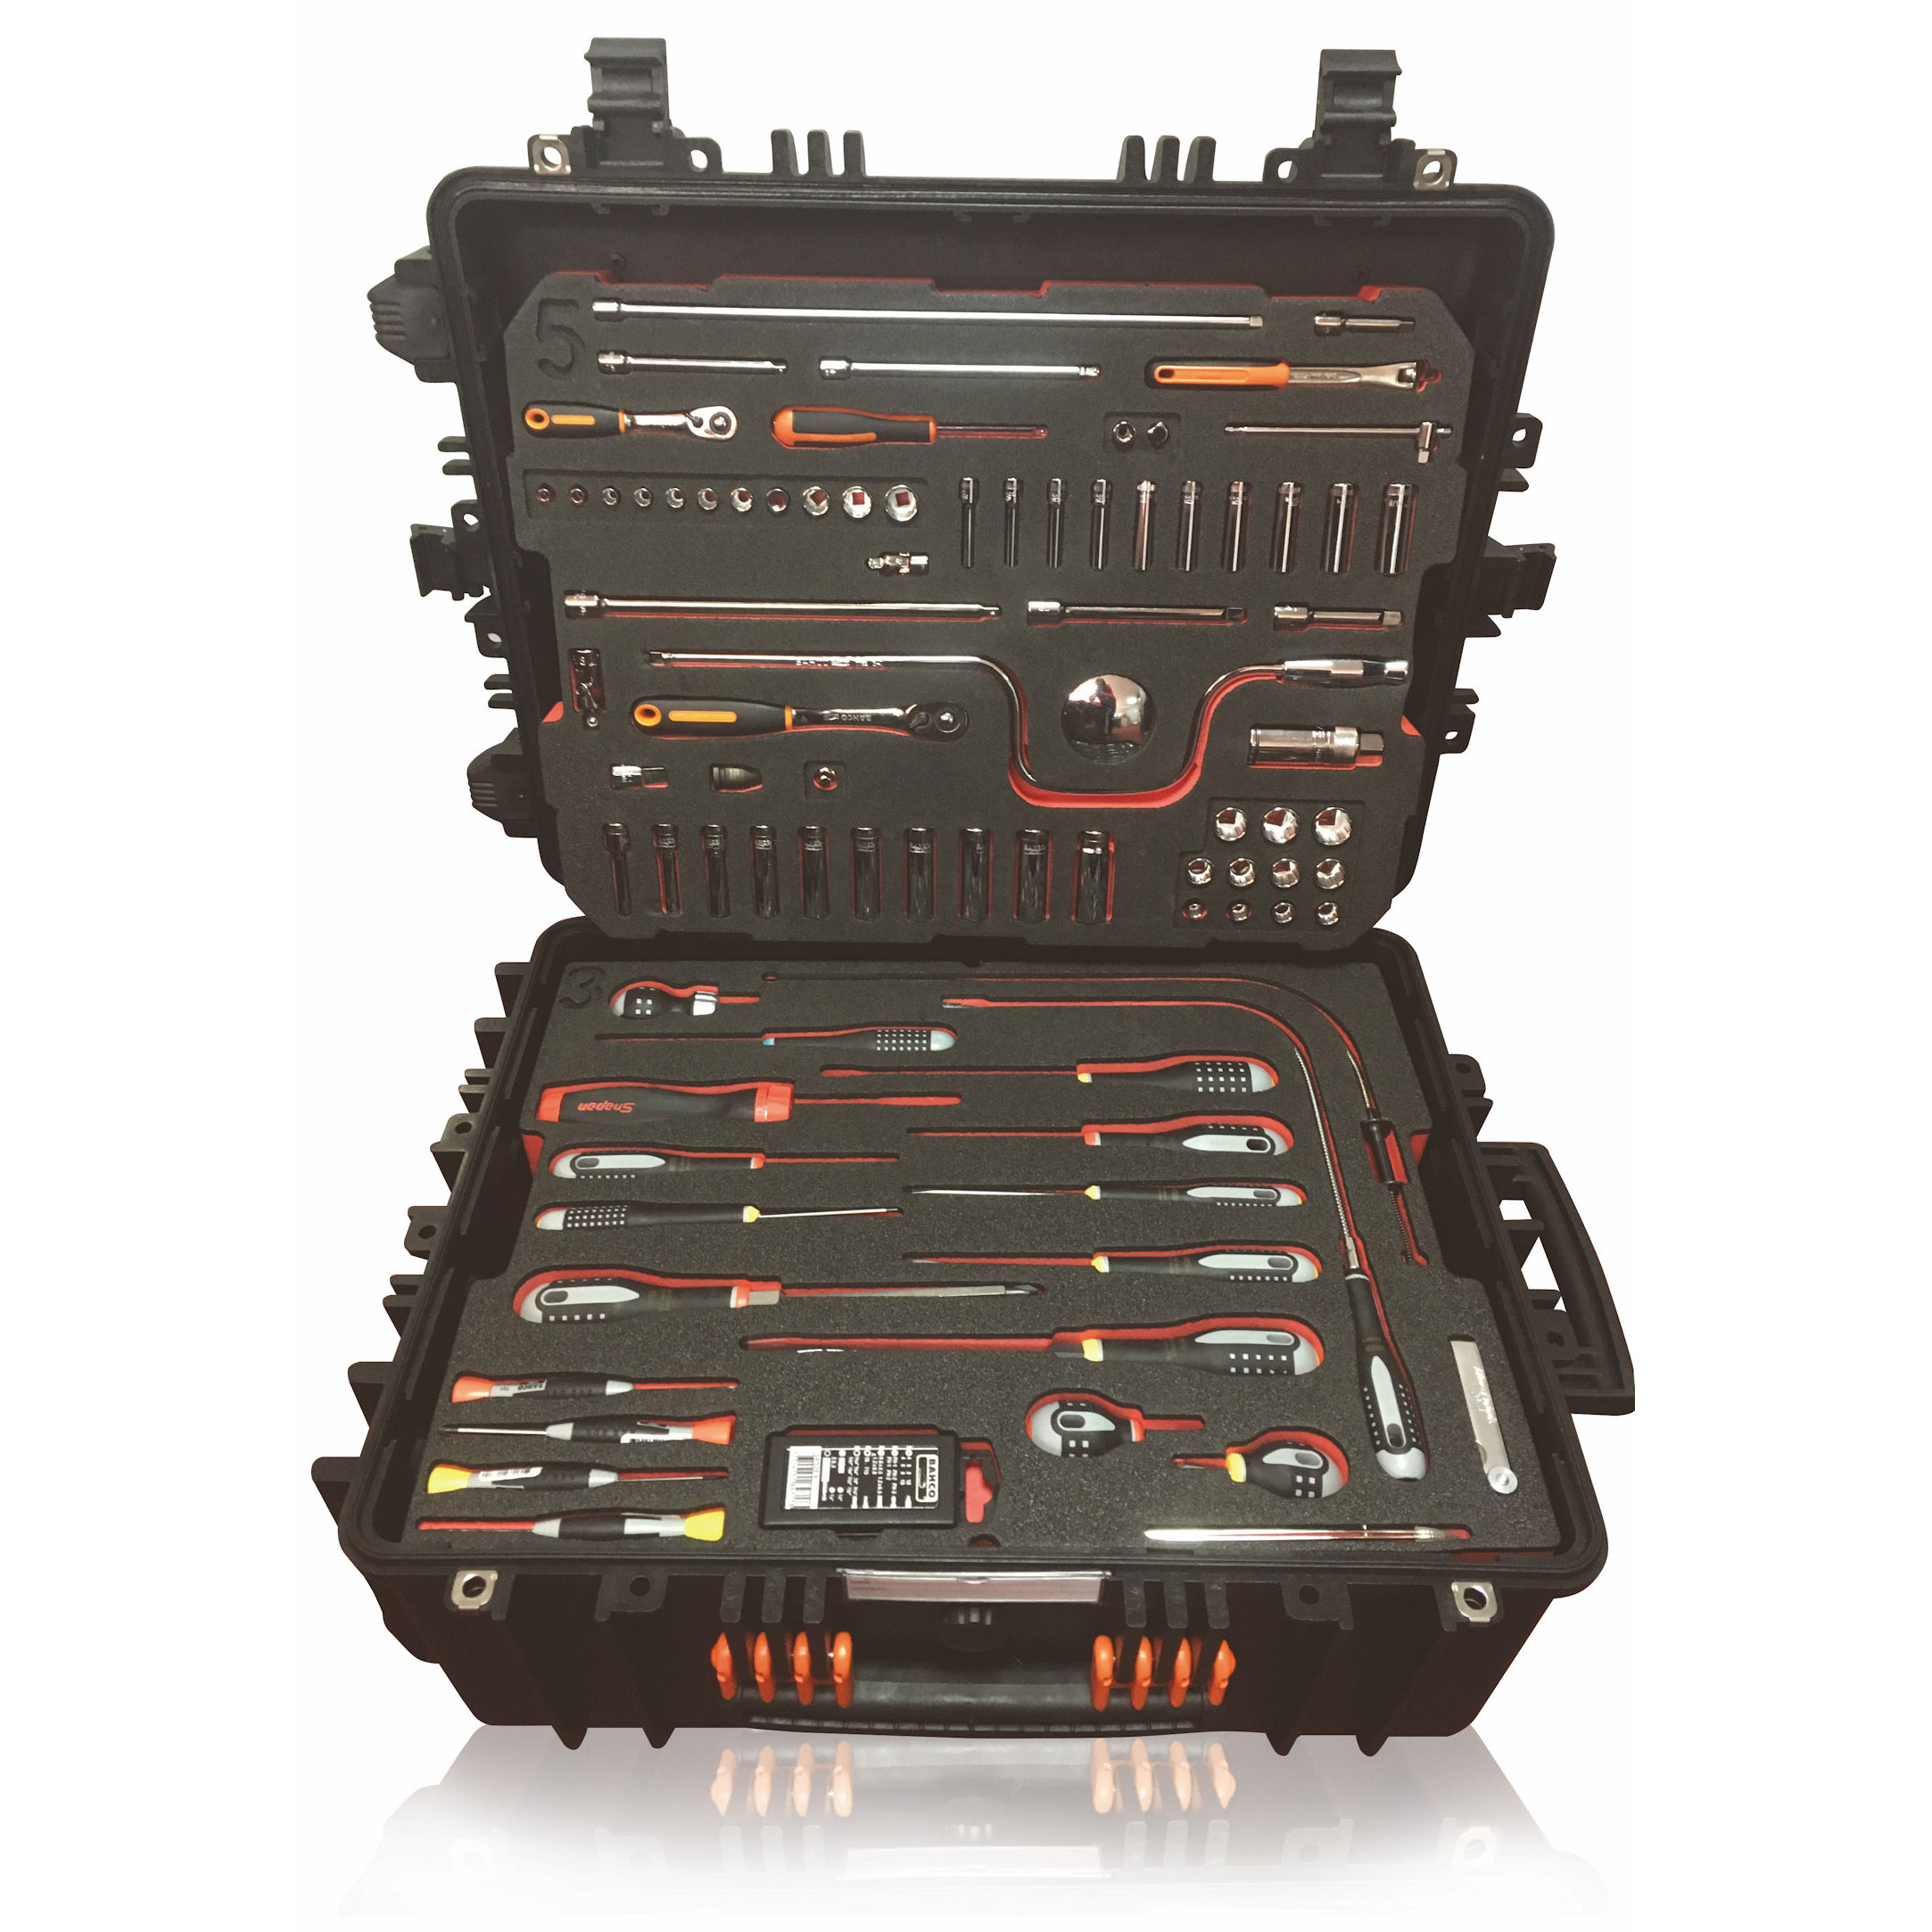 Rbi8100t Boeing Kit Imperial Kit Includes 199 Tools